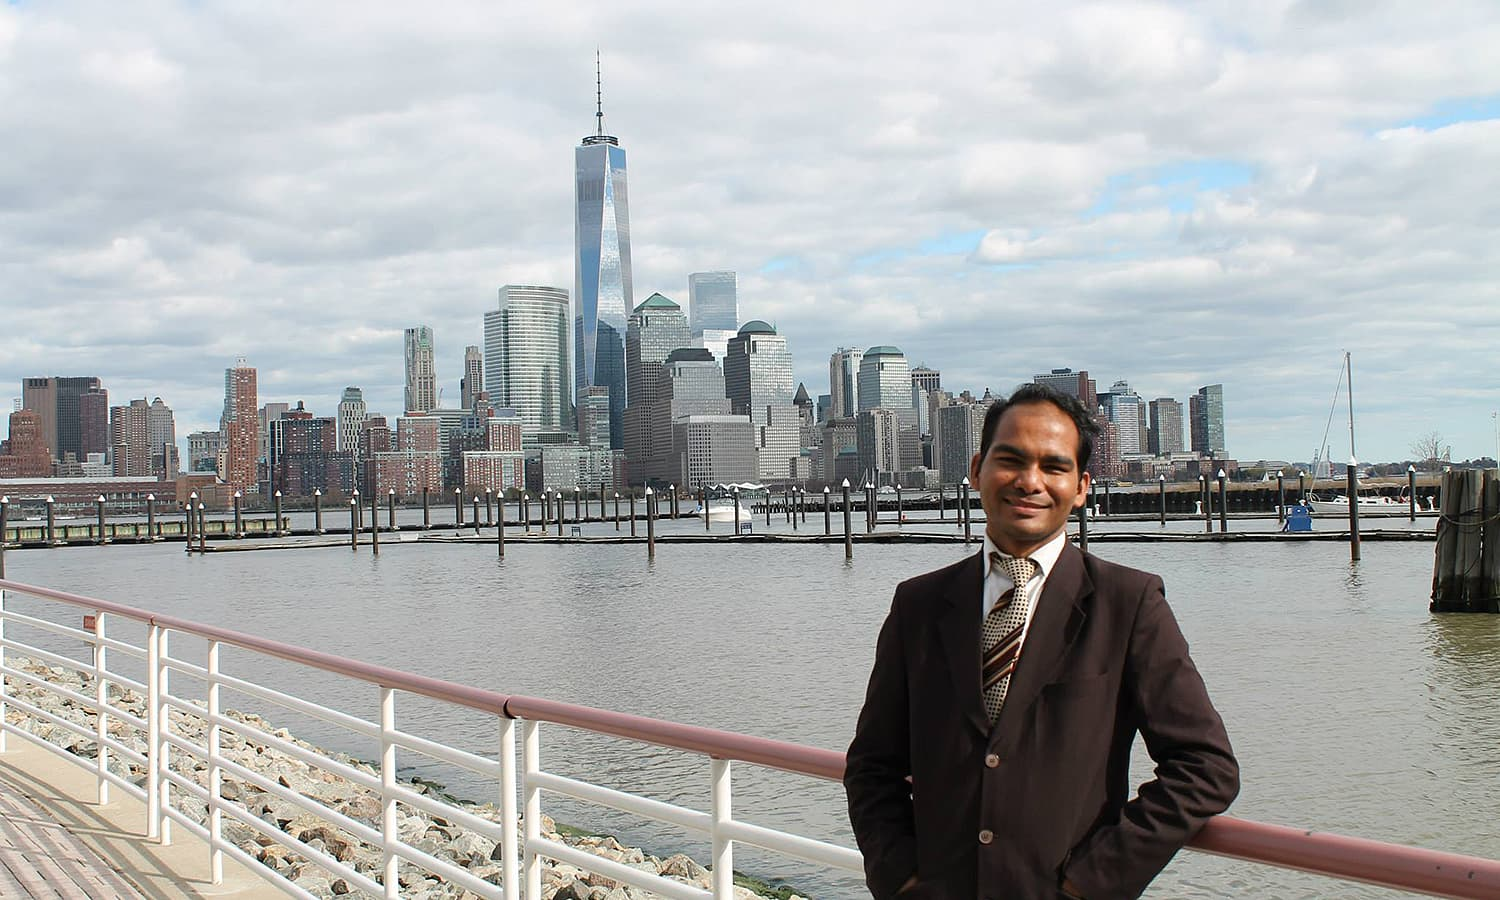 Sabir pictured in New York.